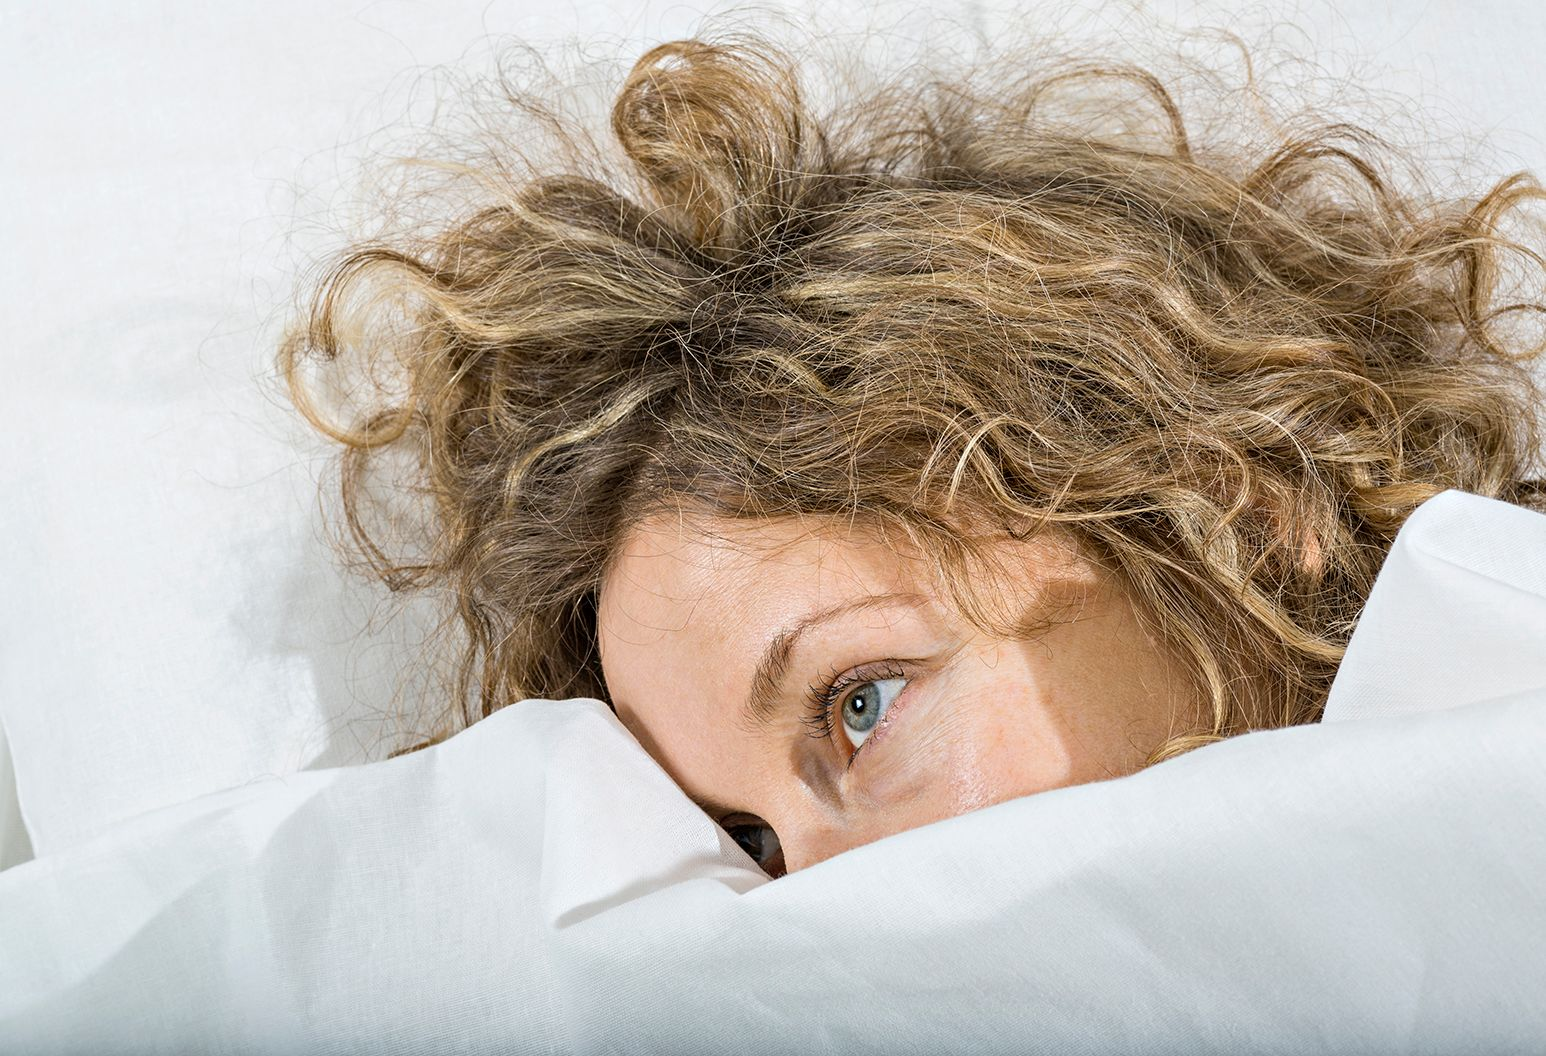 A woman lays in bed, mostly covered by her white bed sheets. Her hair is a mess and her blue eyes look tired and frustrated.